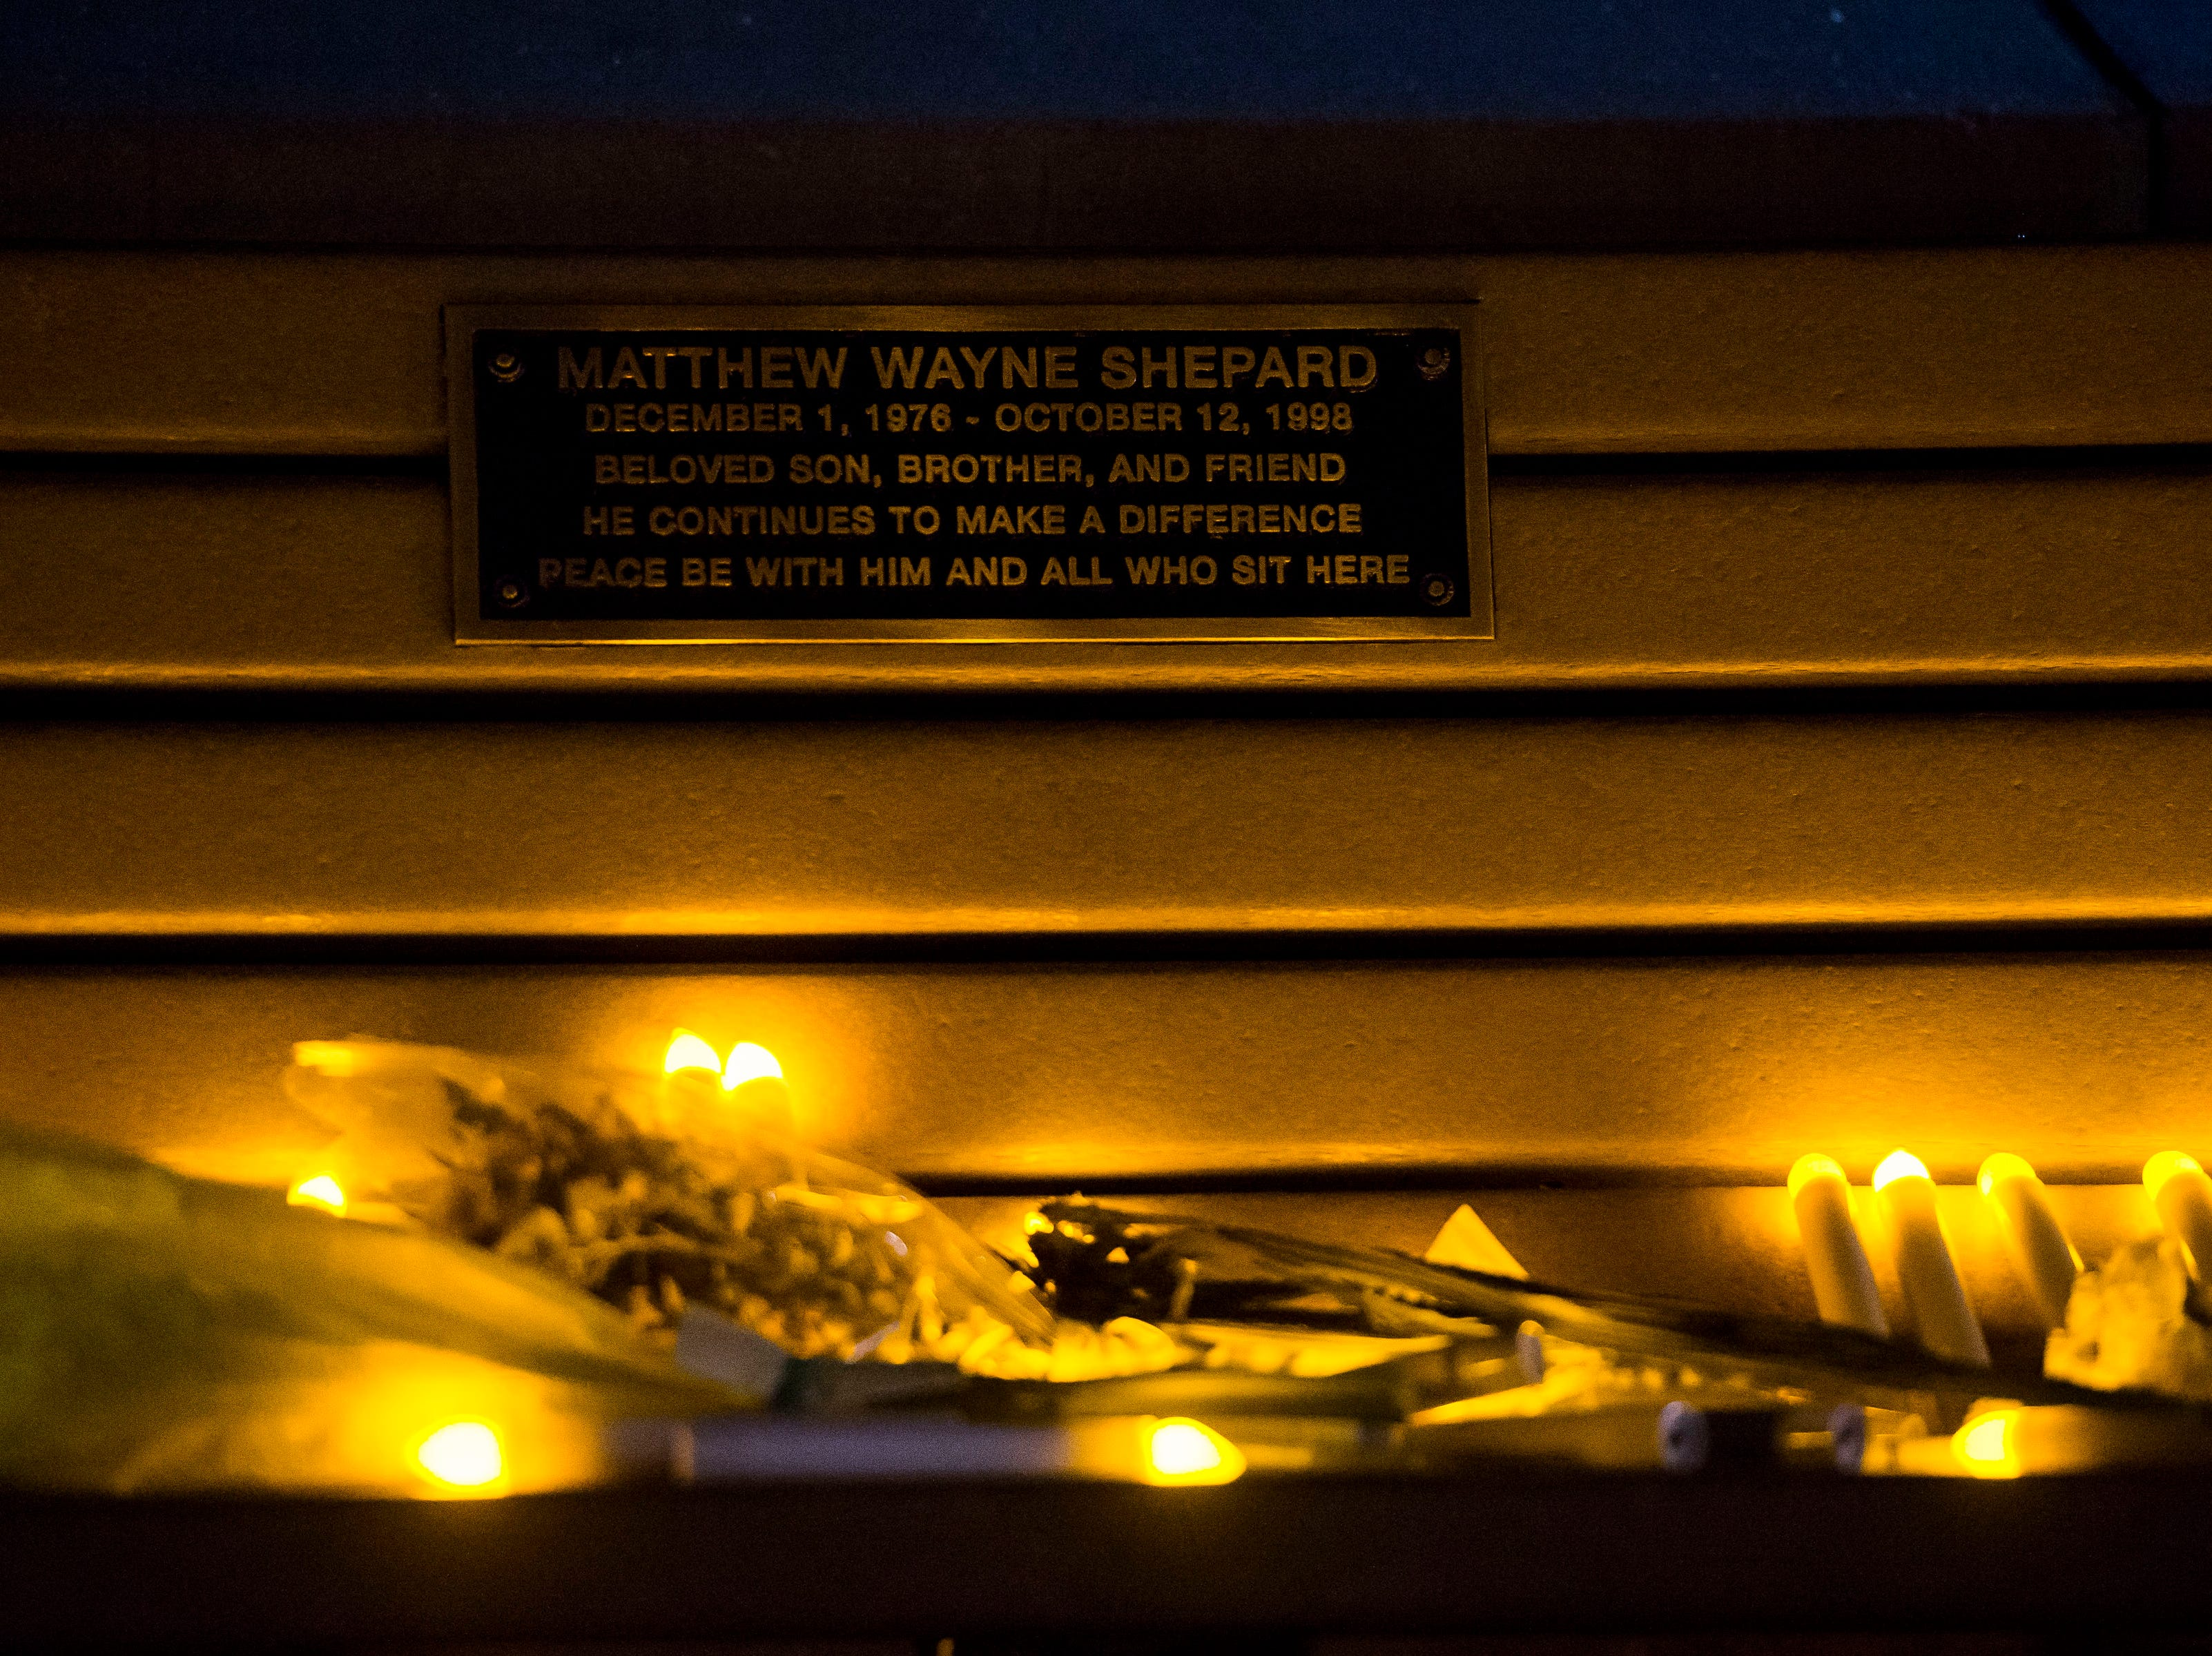 Vigil participants leave their flameless candles on the bench dedicated to Matthew Shepard after a vigil to in remembrance of the 20th anniversary of his death on Friday, Oct. 12, 2018, at Prexy's Pasture on the University of Wyoming campus in Laramie, Wyo.